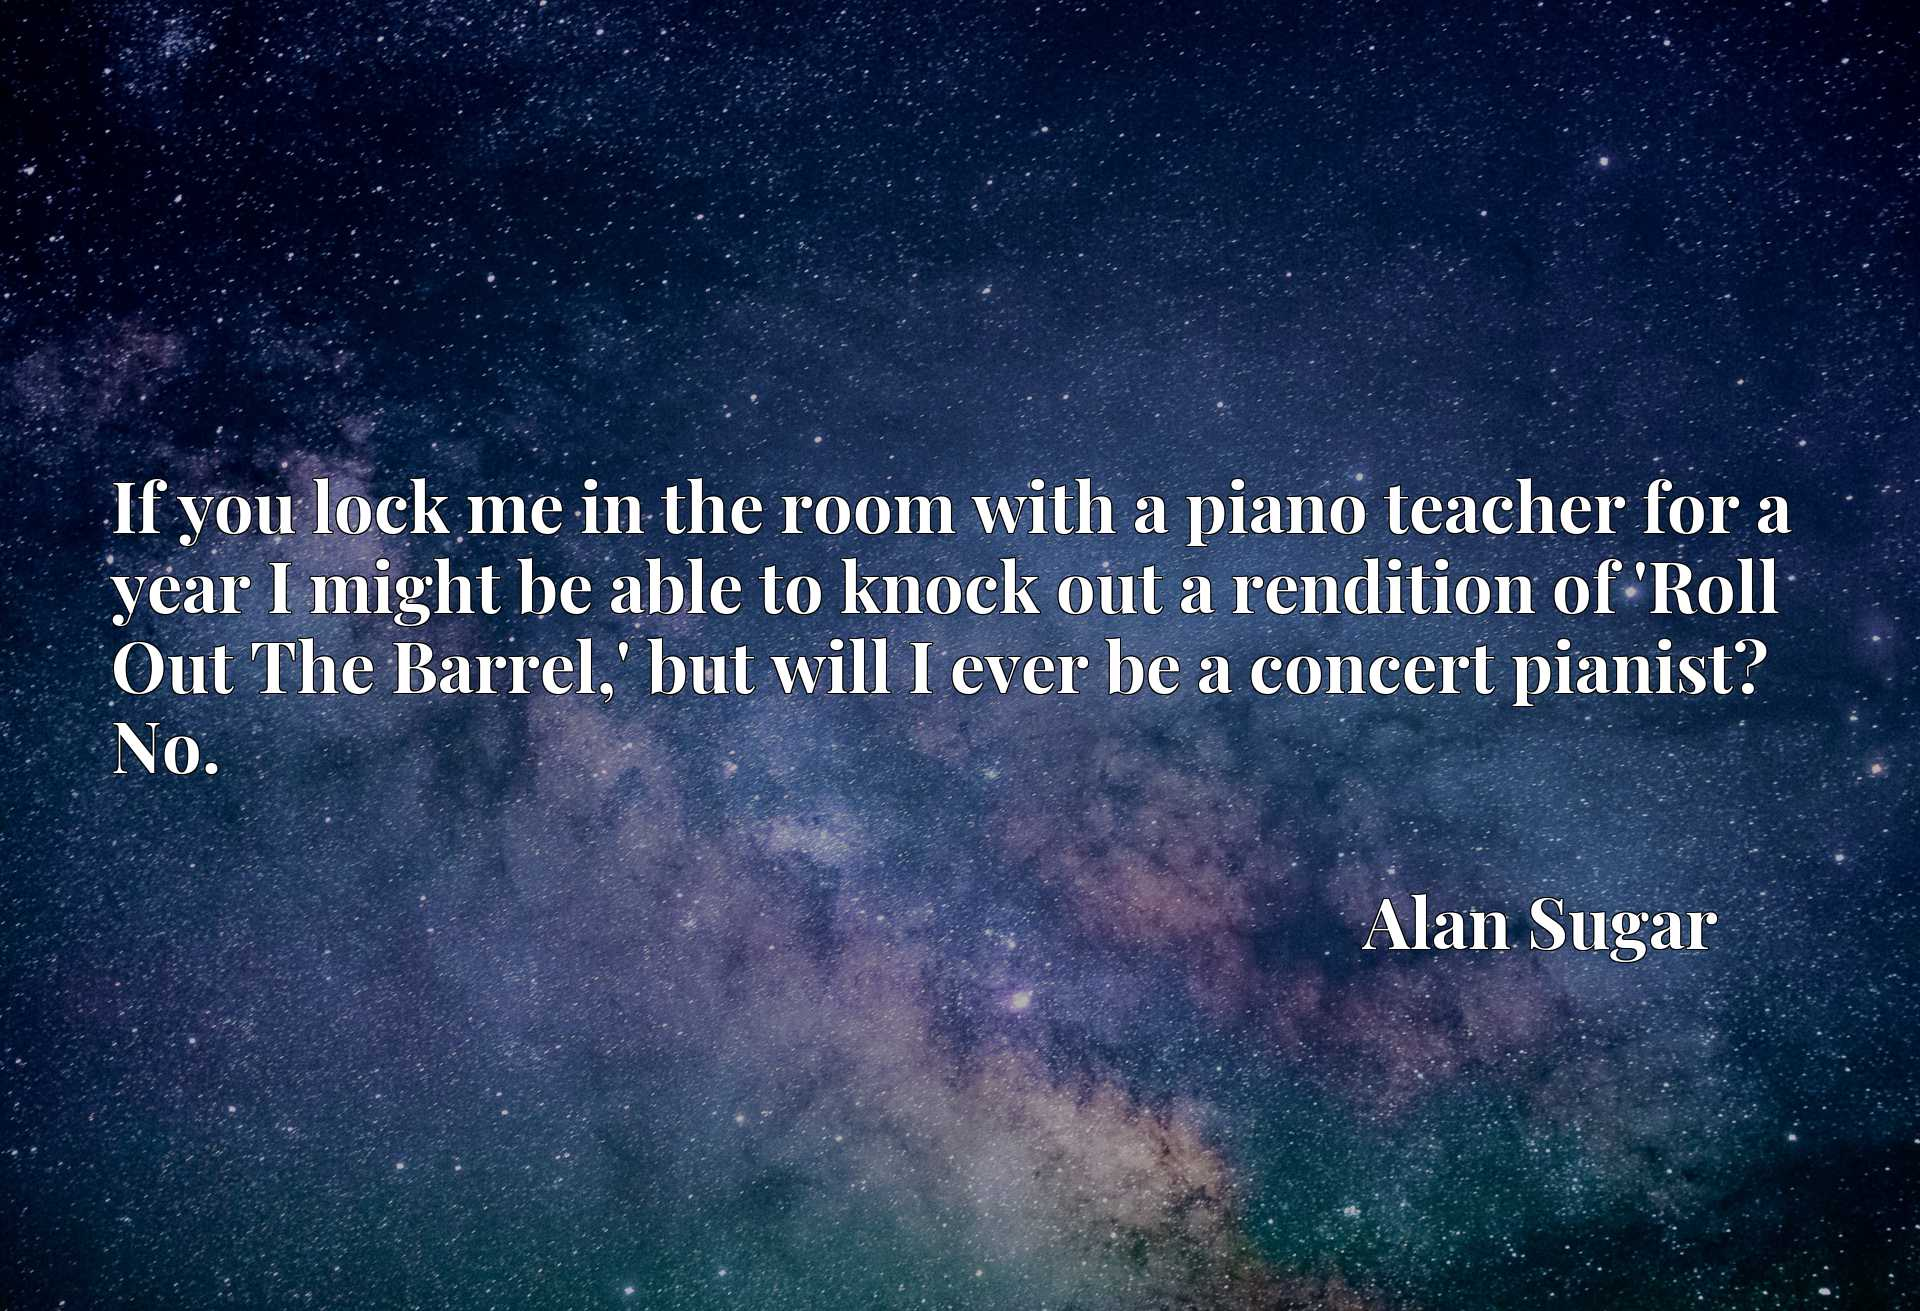 If you lock me in the room with a piano teacher for a year I might be able to knock out a rendition of 'Roll Out The Barrel,' but will I ever be a concert pianist? No.